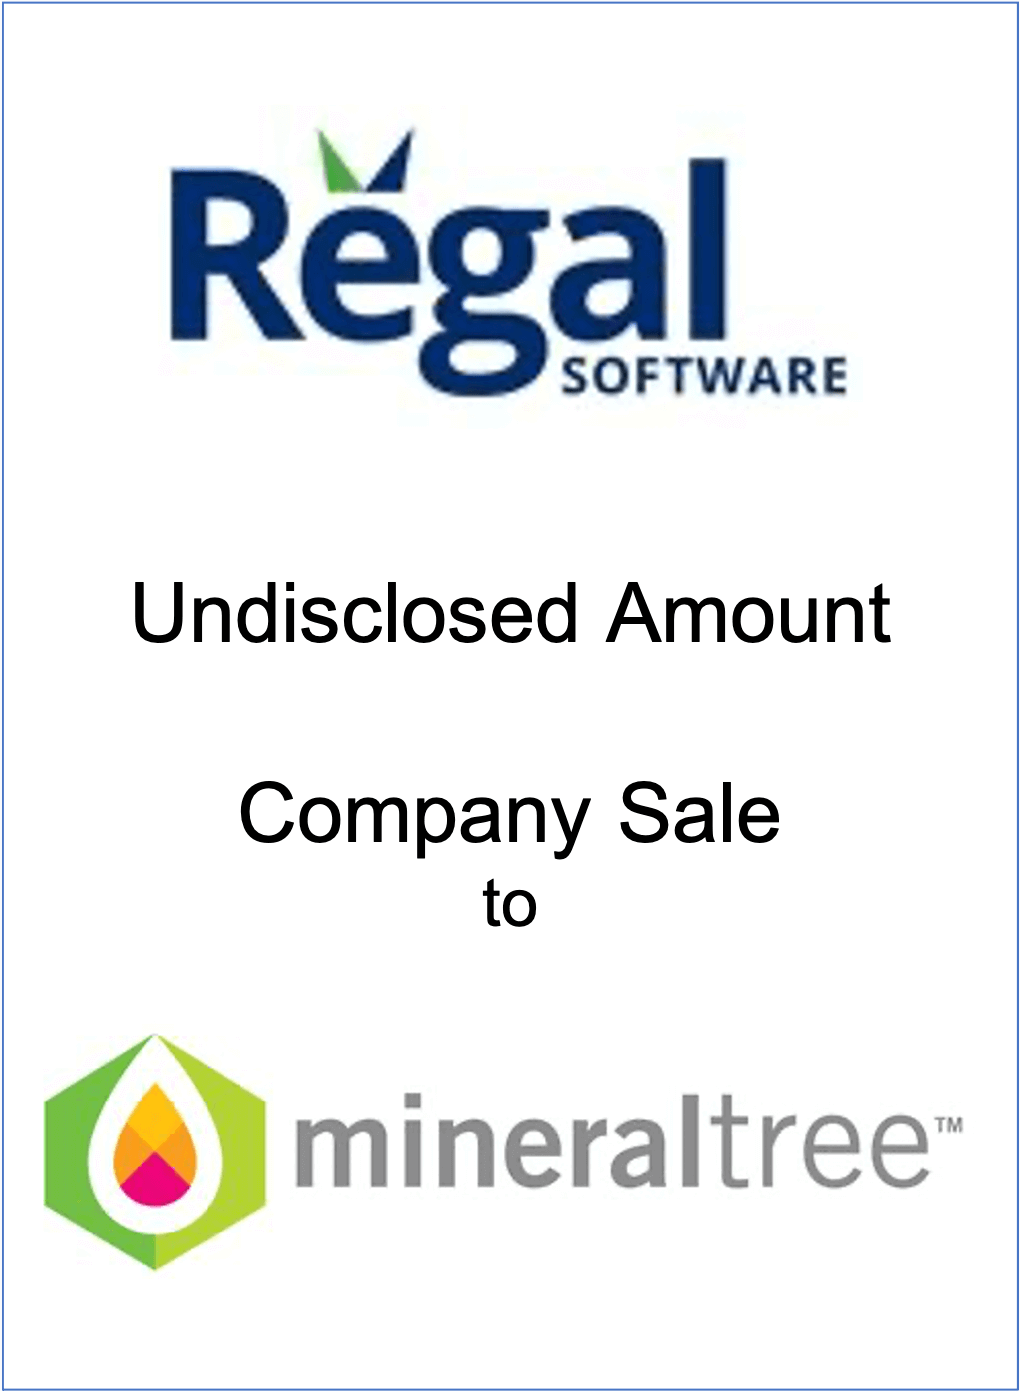 NorthView Advisors represents Regal Software in its sale to MineralTree